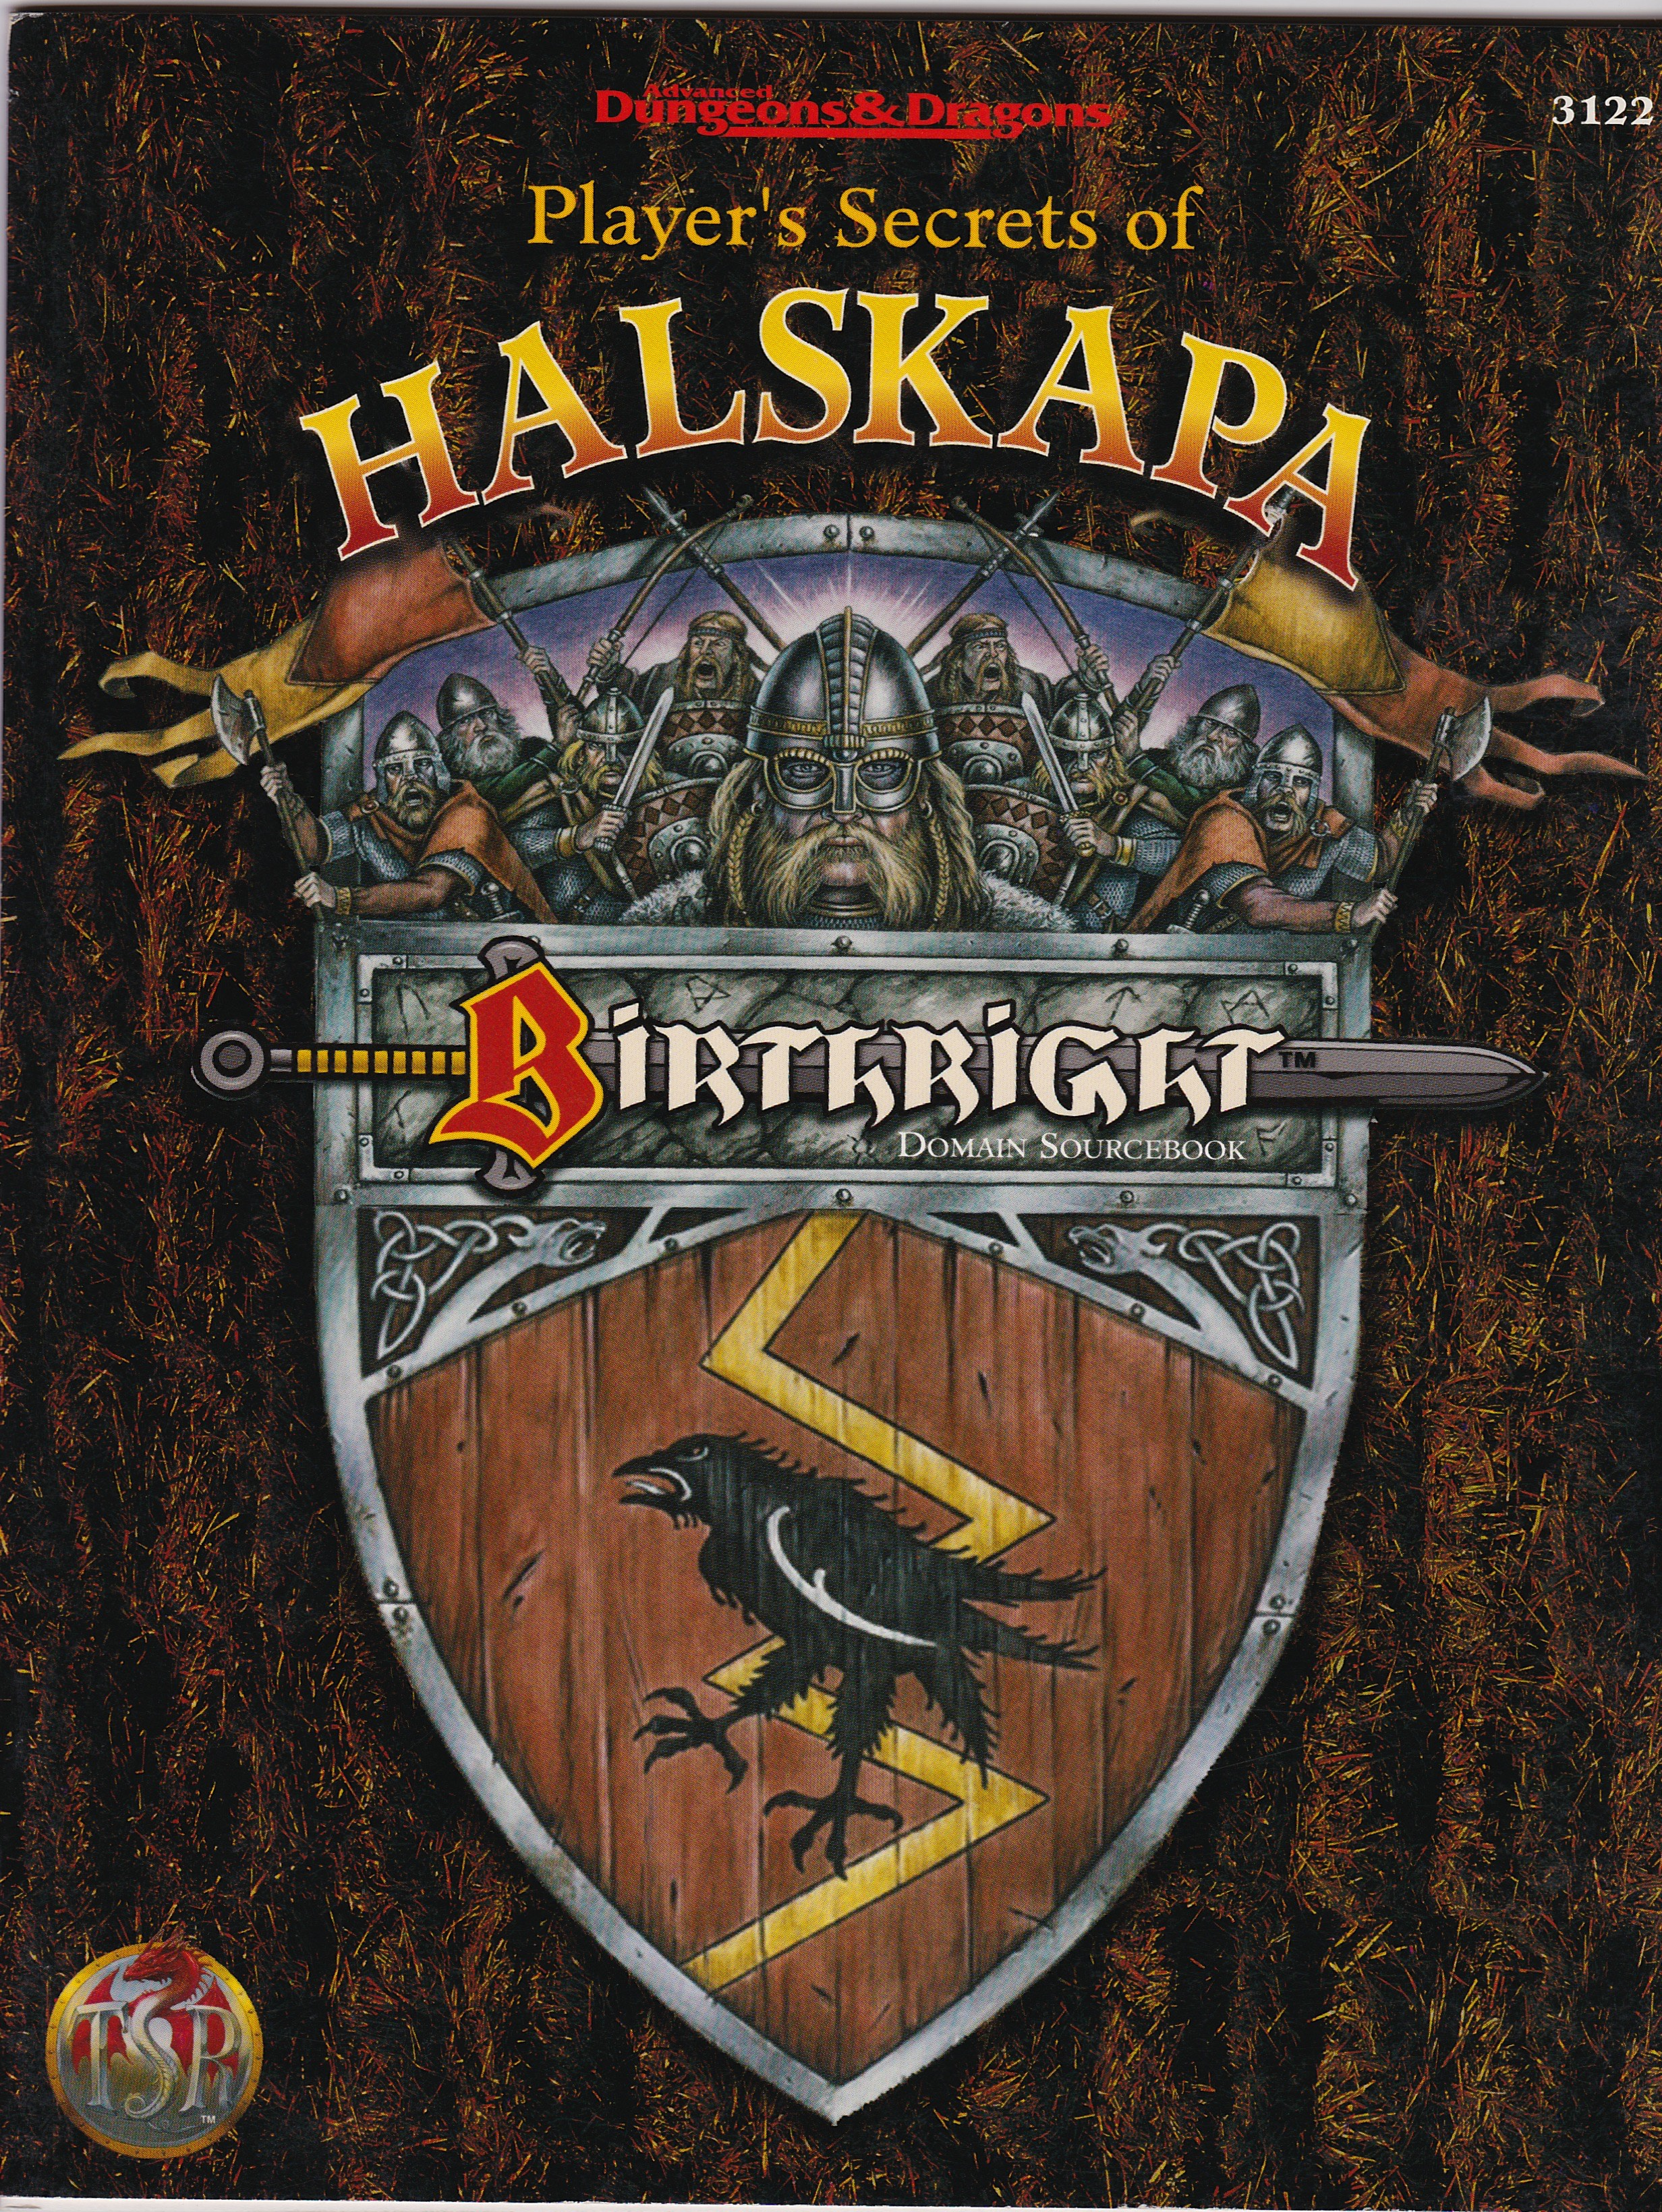 AD&D Birthright, Player's secret of Halskapa